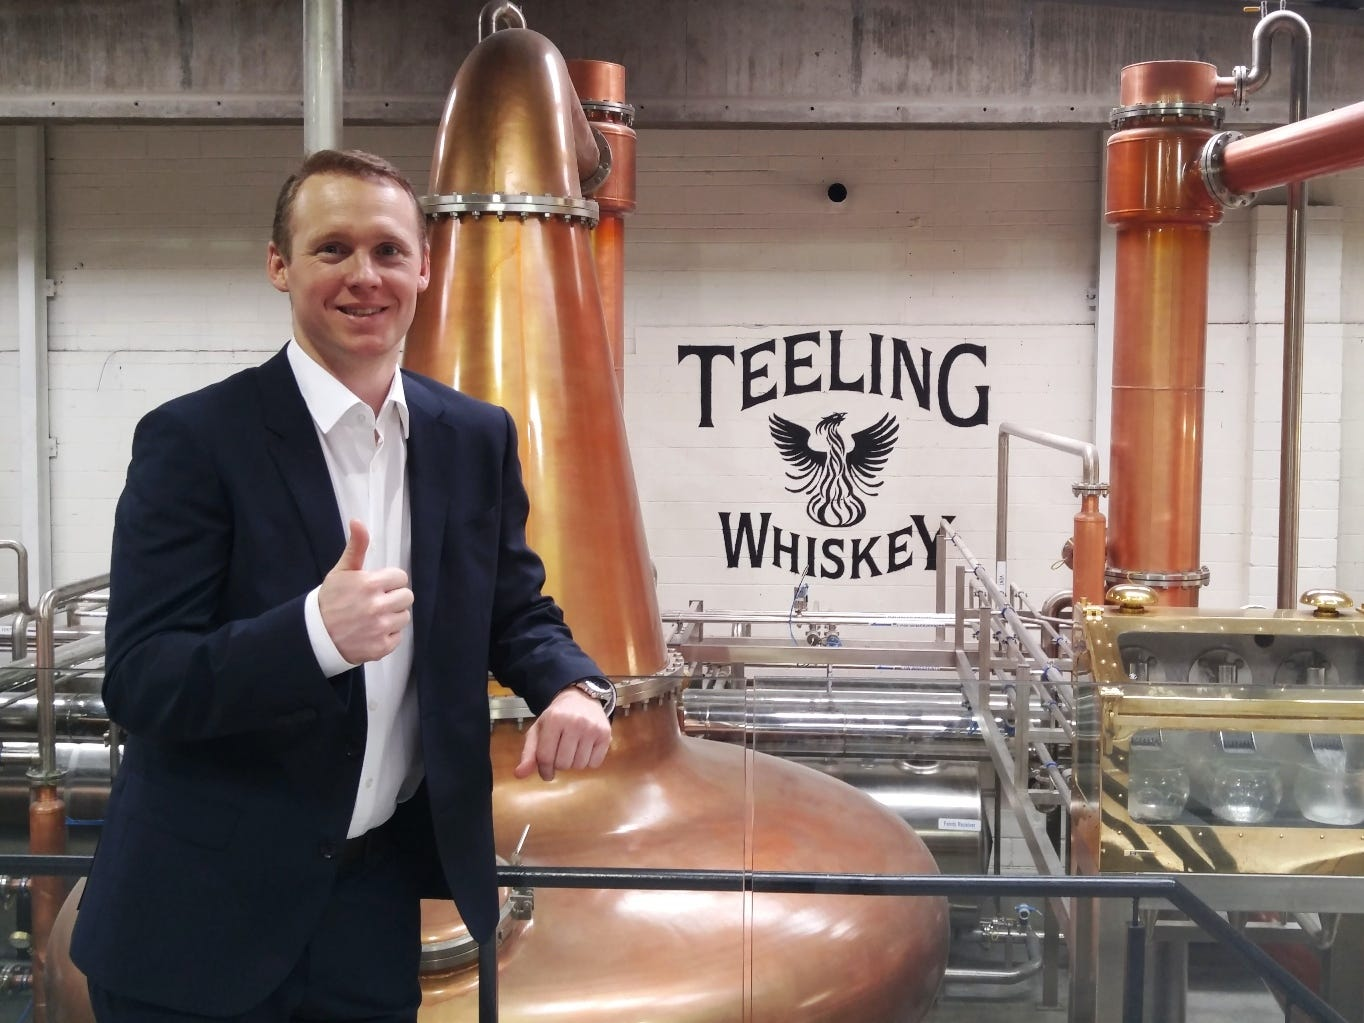 """Our family origins in the industry began back in 1782 when Walter Teeling had a craft distillery in the Liberties area of Dublin and as part of our goal to revive our old family whiskey brand it made perfect sense to go right back to where it first began to build our new distillery,"" Teeling says. ""In 1976 the last Dublin distillery stills went cold and so began the decline of an industry long associated with my home town. It makes me very proud to be able to bring something uniquely Dublin back to the cultural and social fabric of the city."""